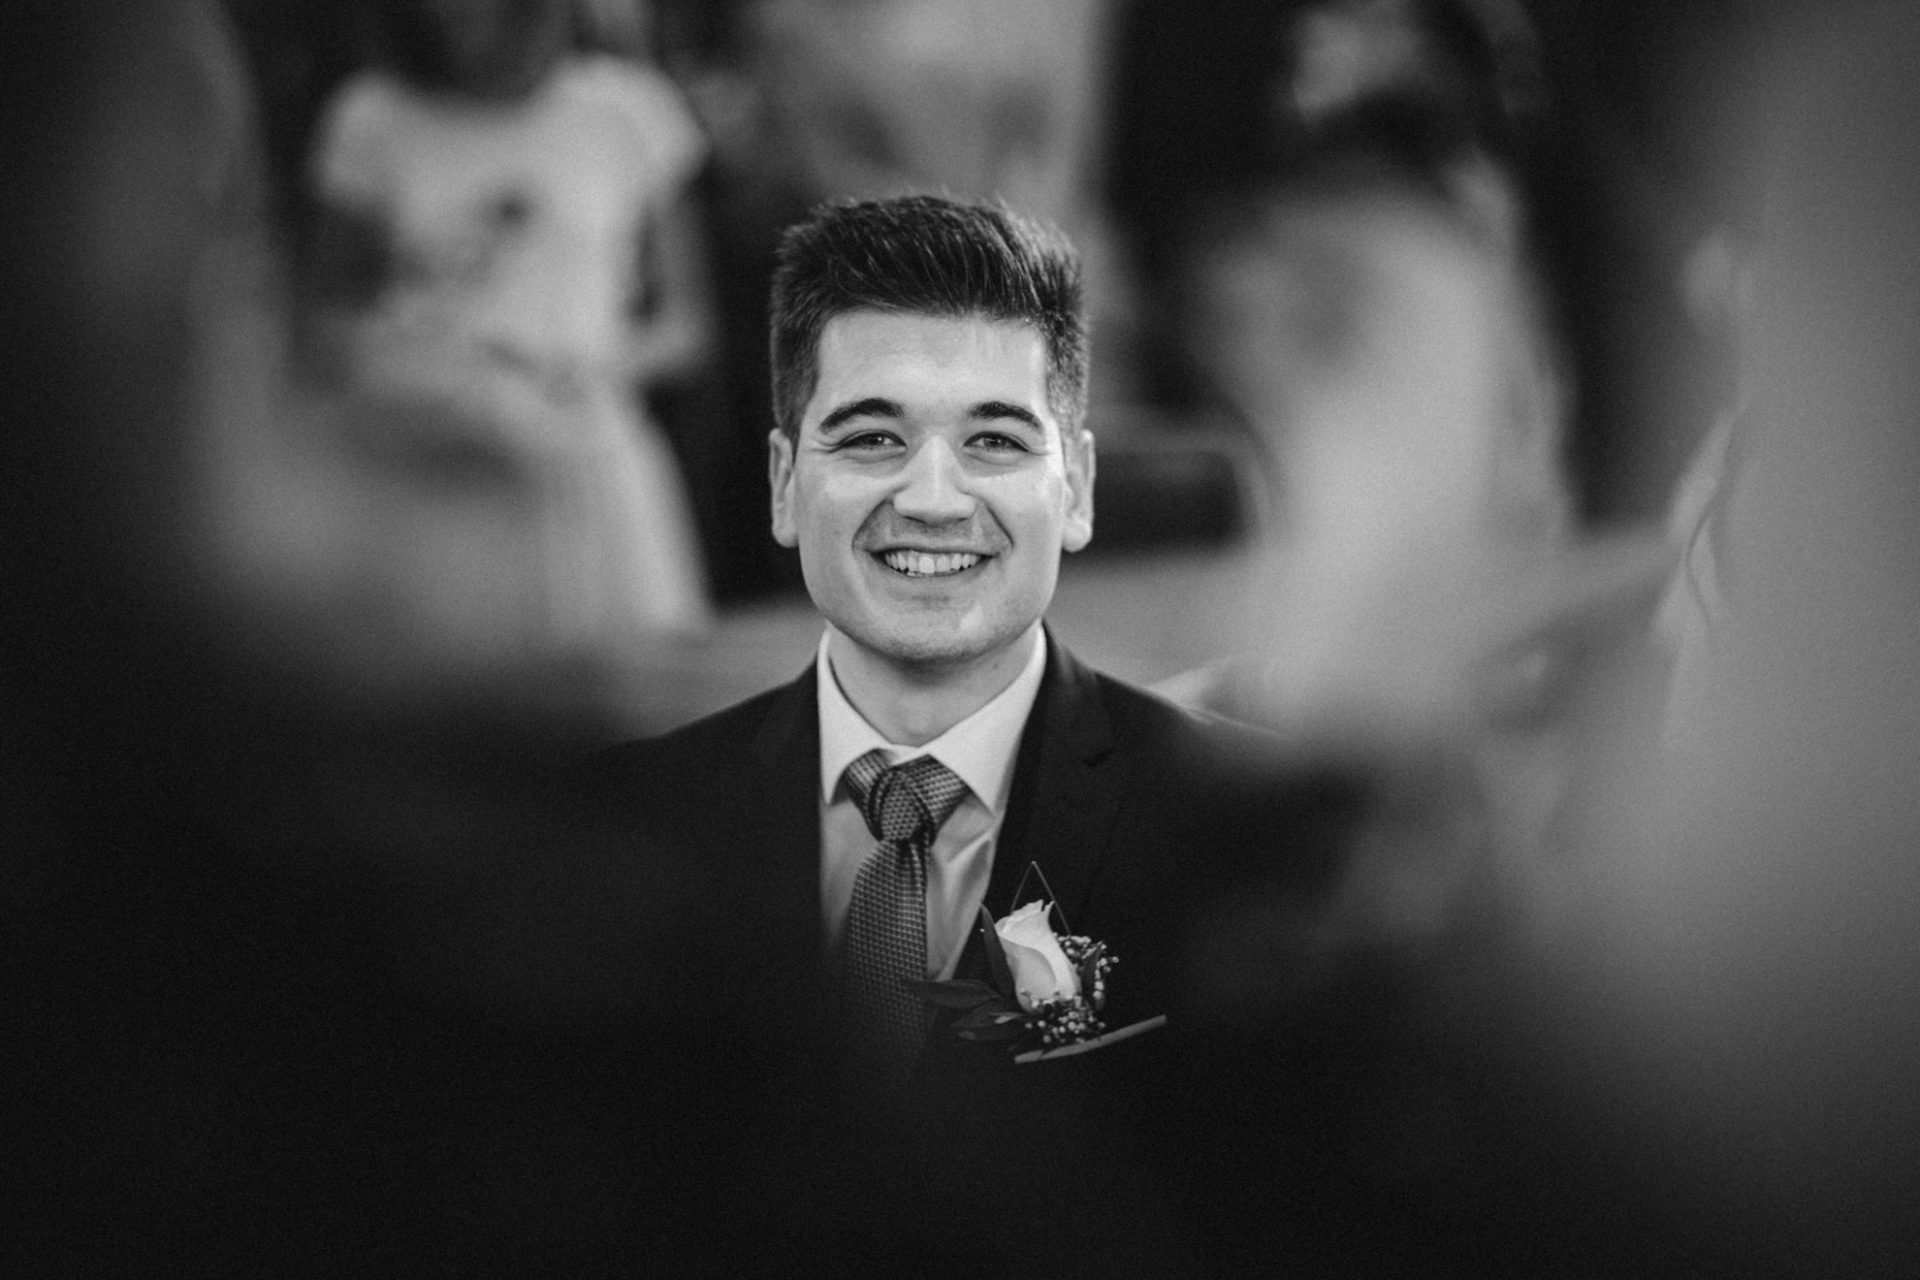 the smile of the groom - destination wedding photographer france